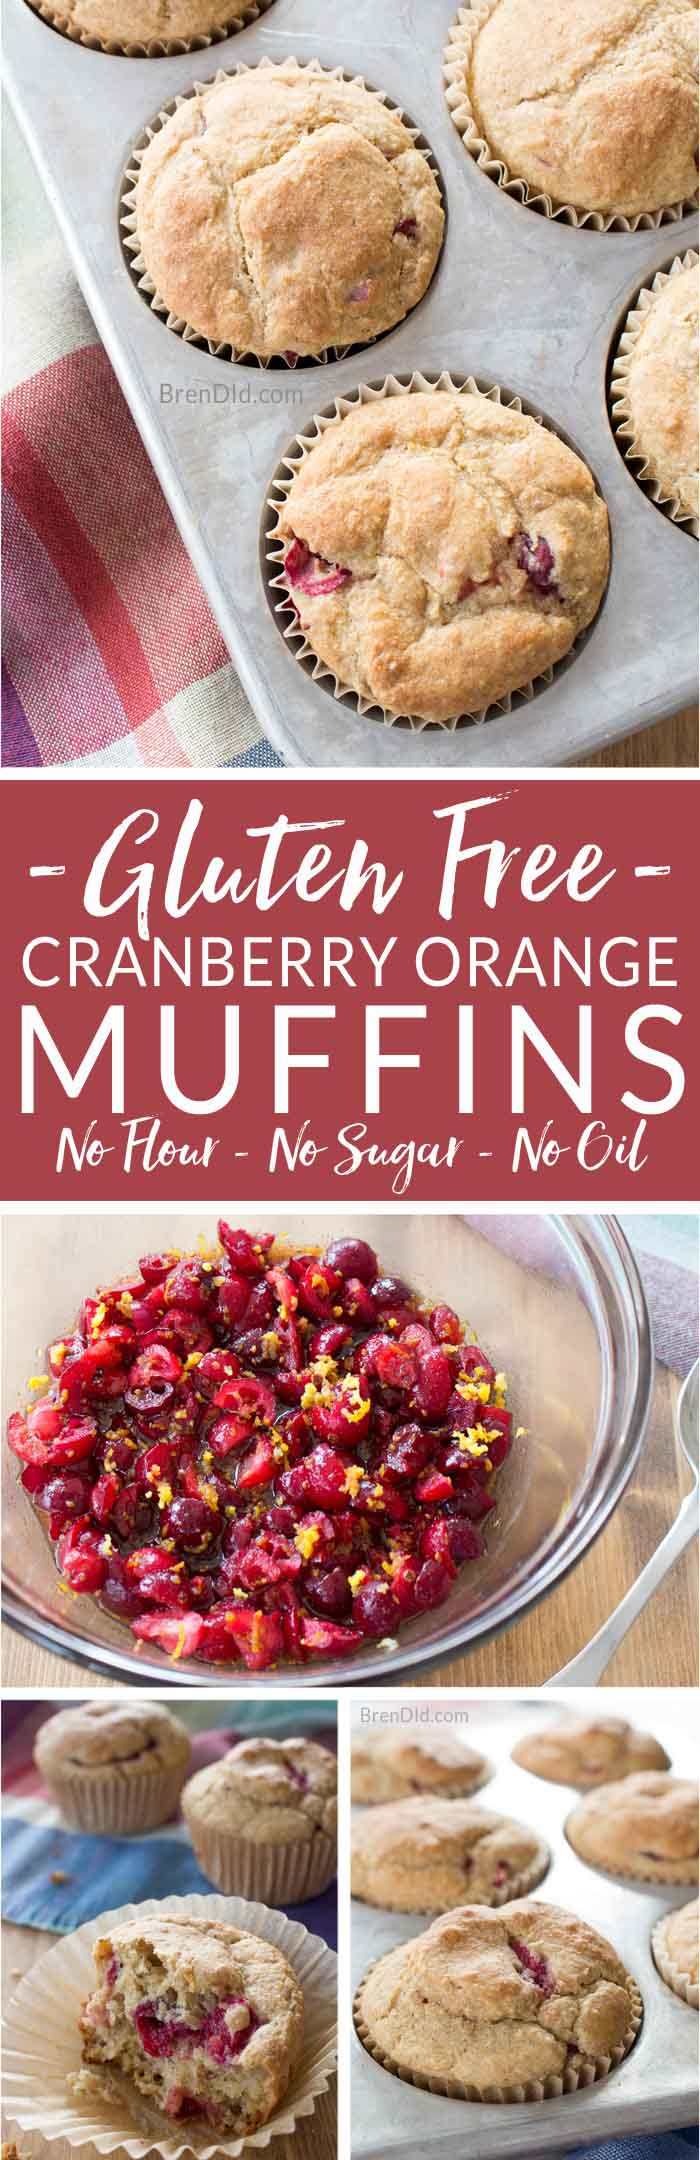 Must try these amazing Gluten Free Cranberry Orange Muffins! The contain No Flour, No Sugar & No Fat! gluten free muffins | healthy muffins | healthy oatmeal muffins | healthy cranberry muffins